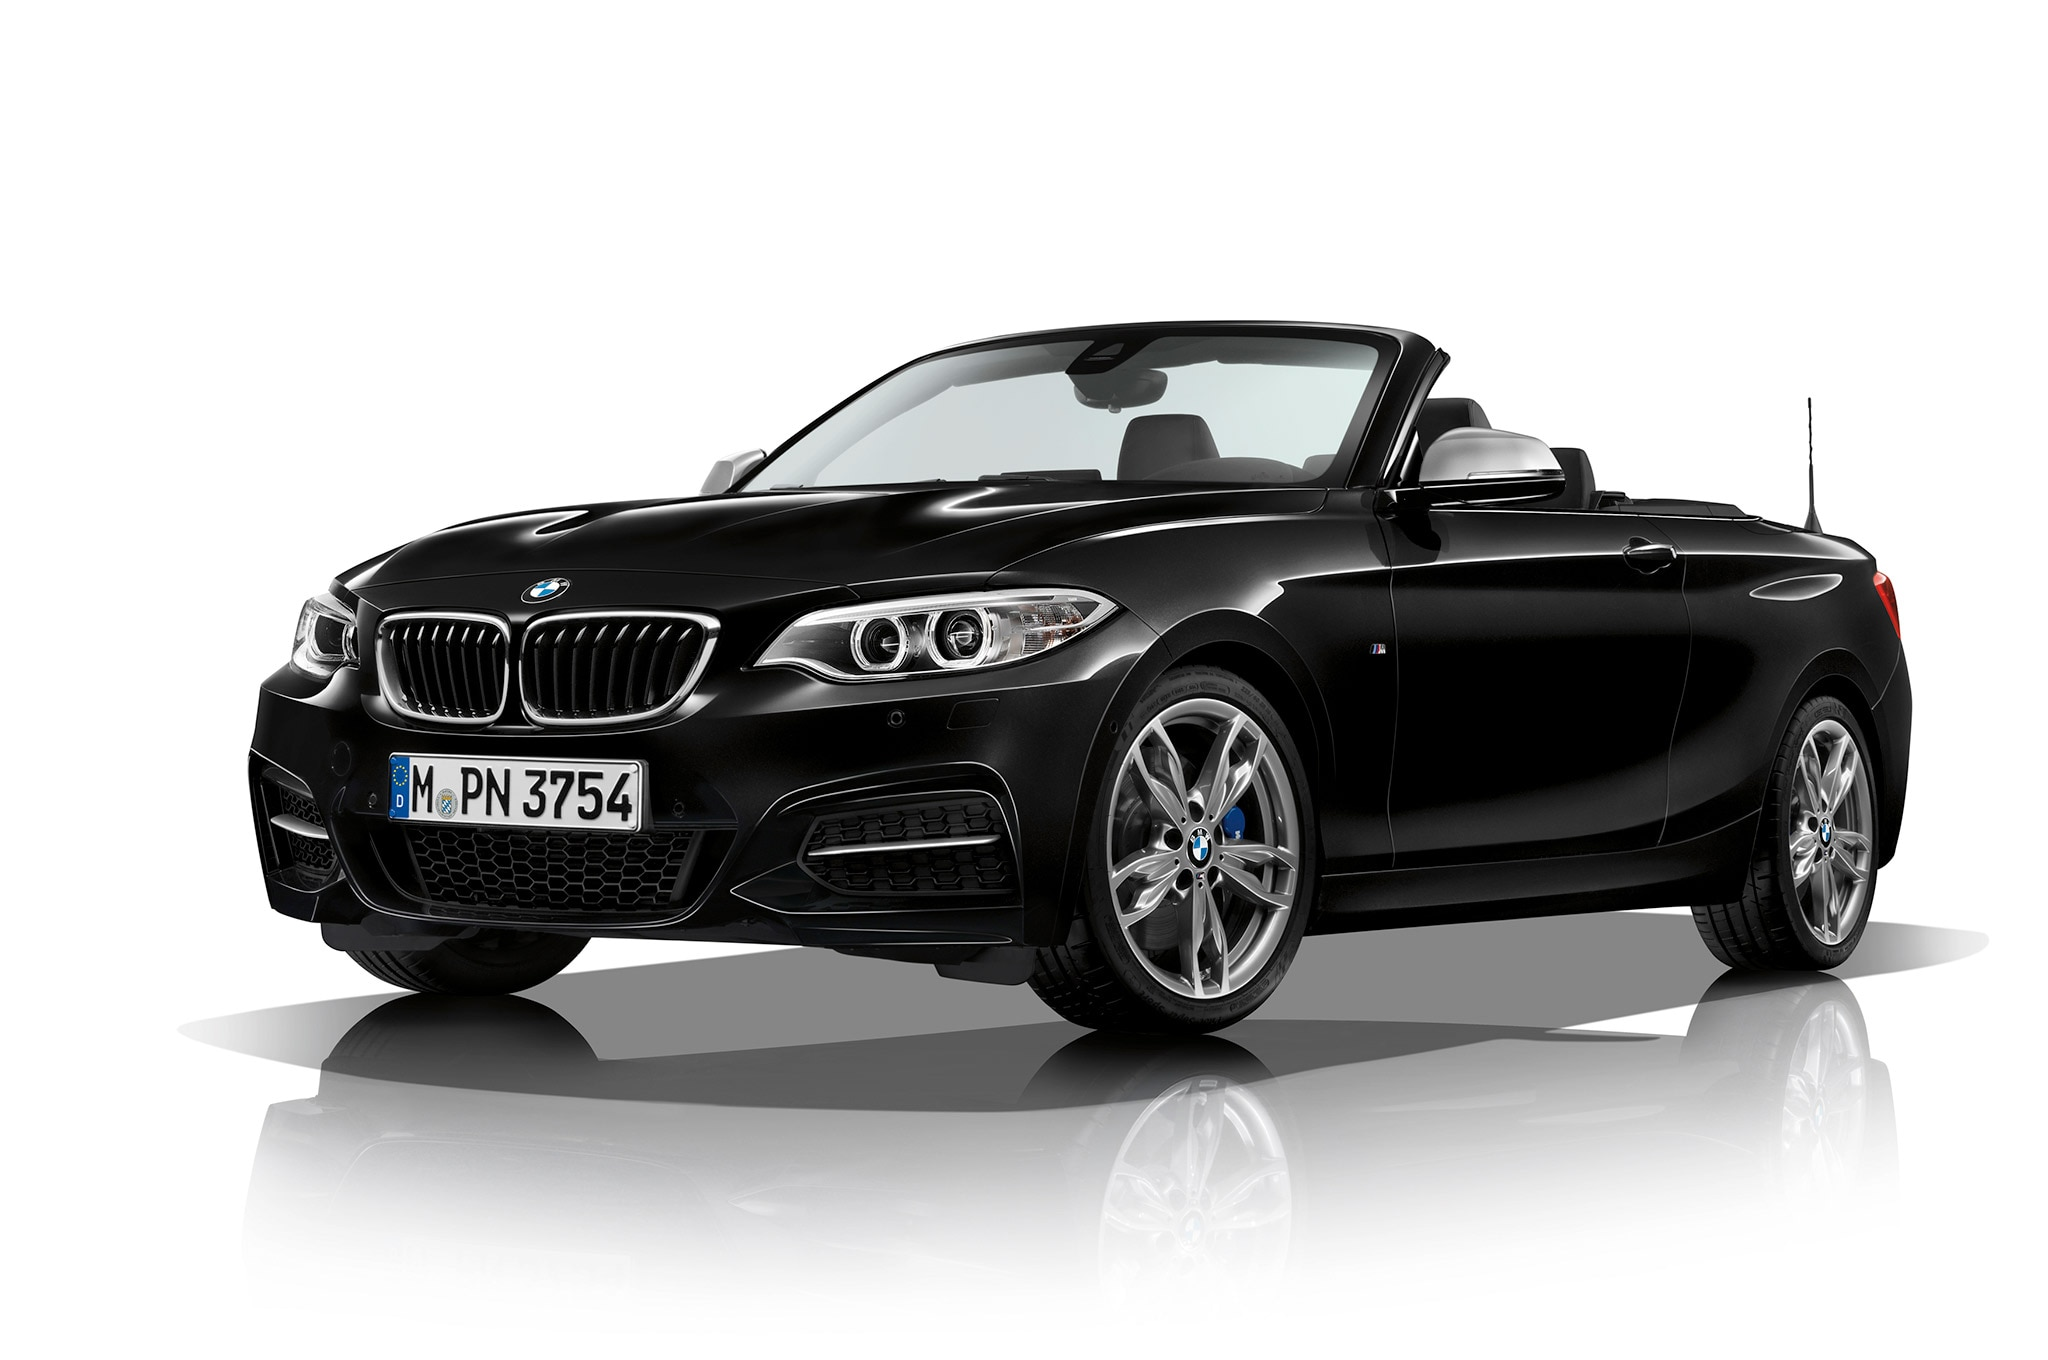 2018 Bmw M240i Convertible Specs And Price >> 2017 Bmw 2 Series Lineup Revealed With New Engines Automobile